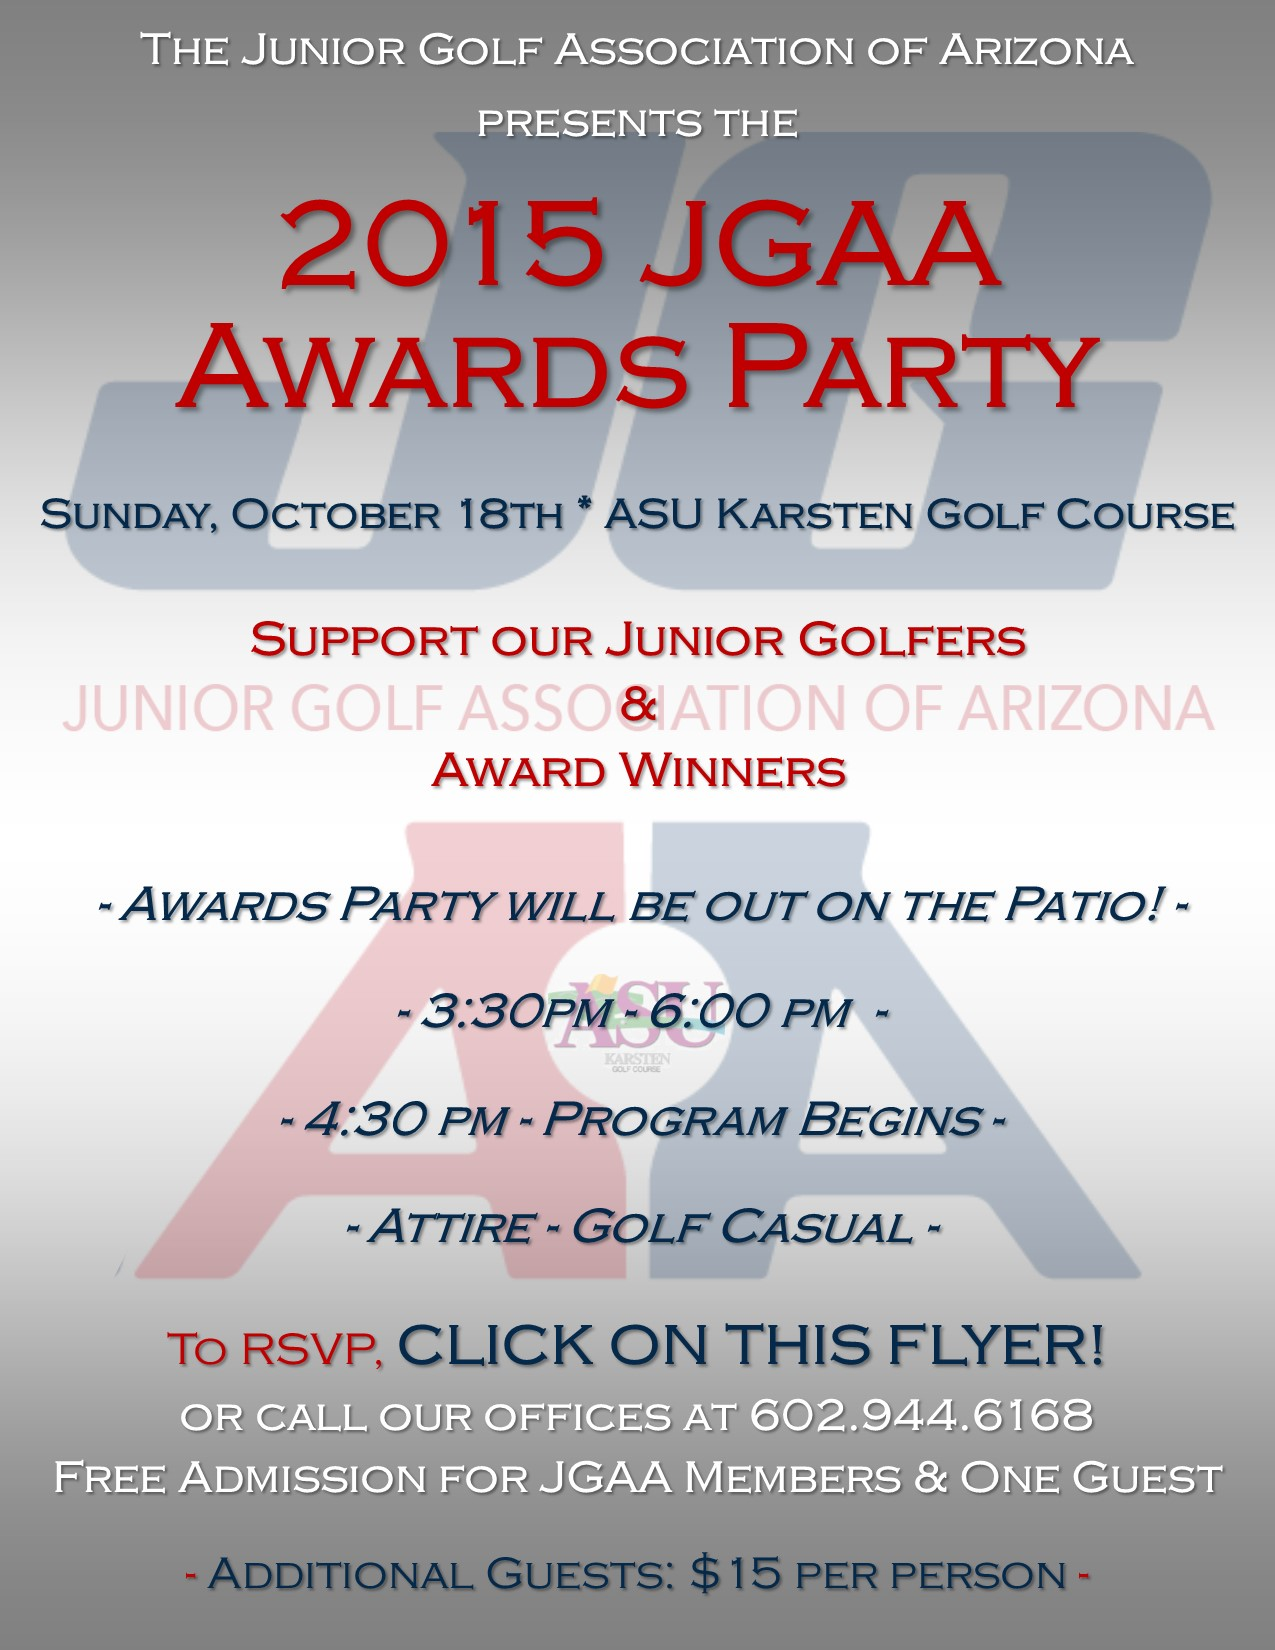 website_flyer_for_awards_party_2015